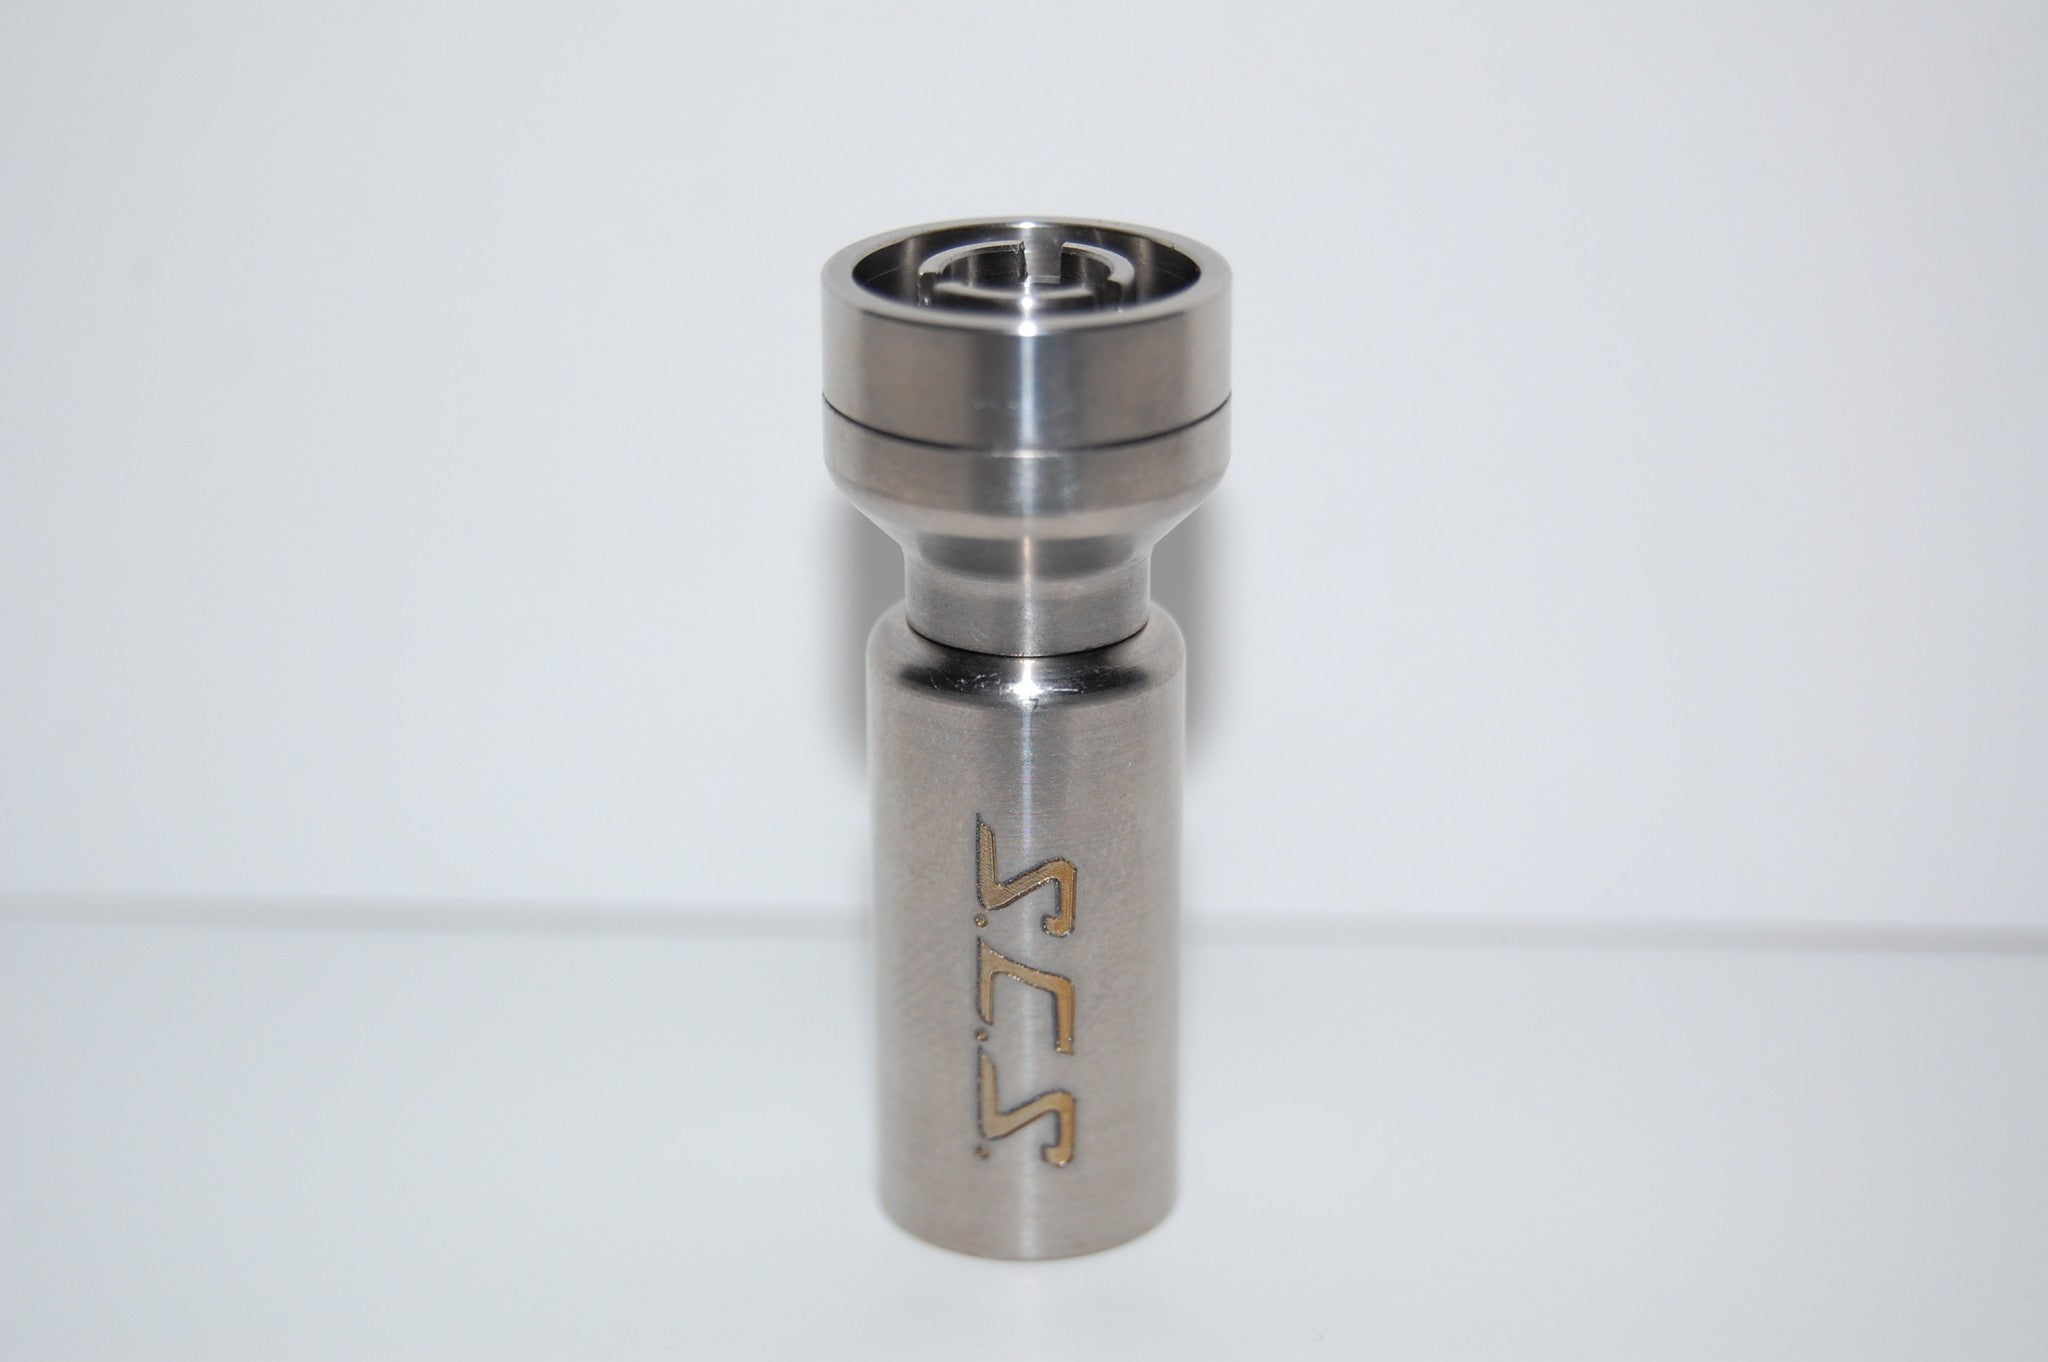 Santa Cruz Shredder Omni Mini 10mm Domeless Titanium